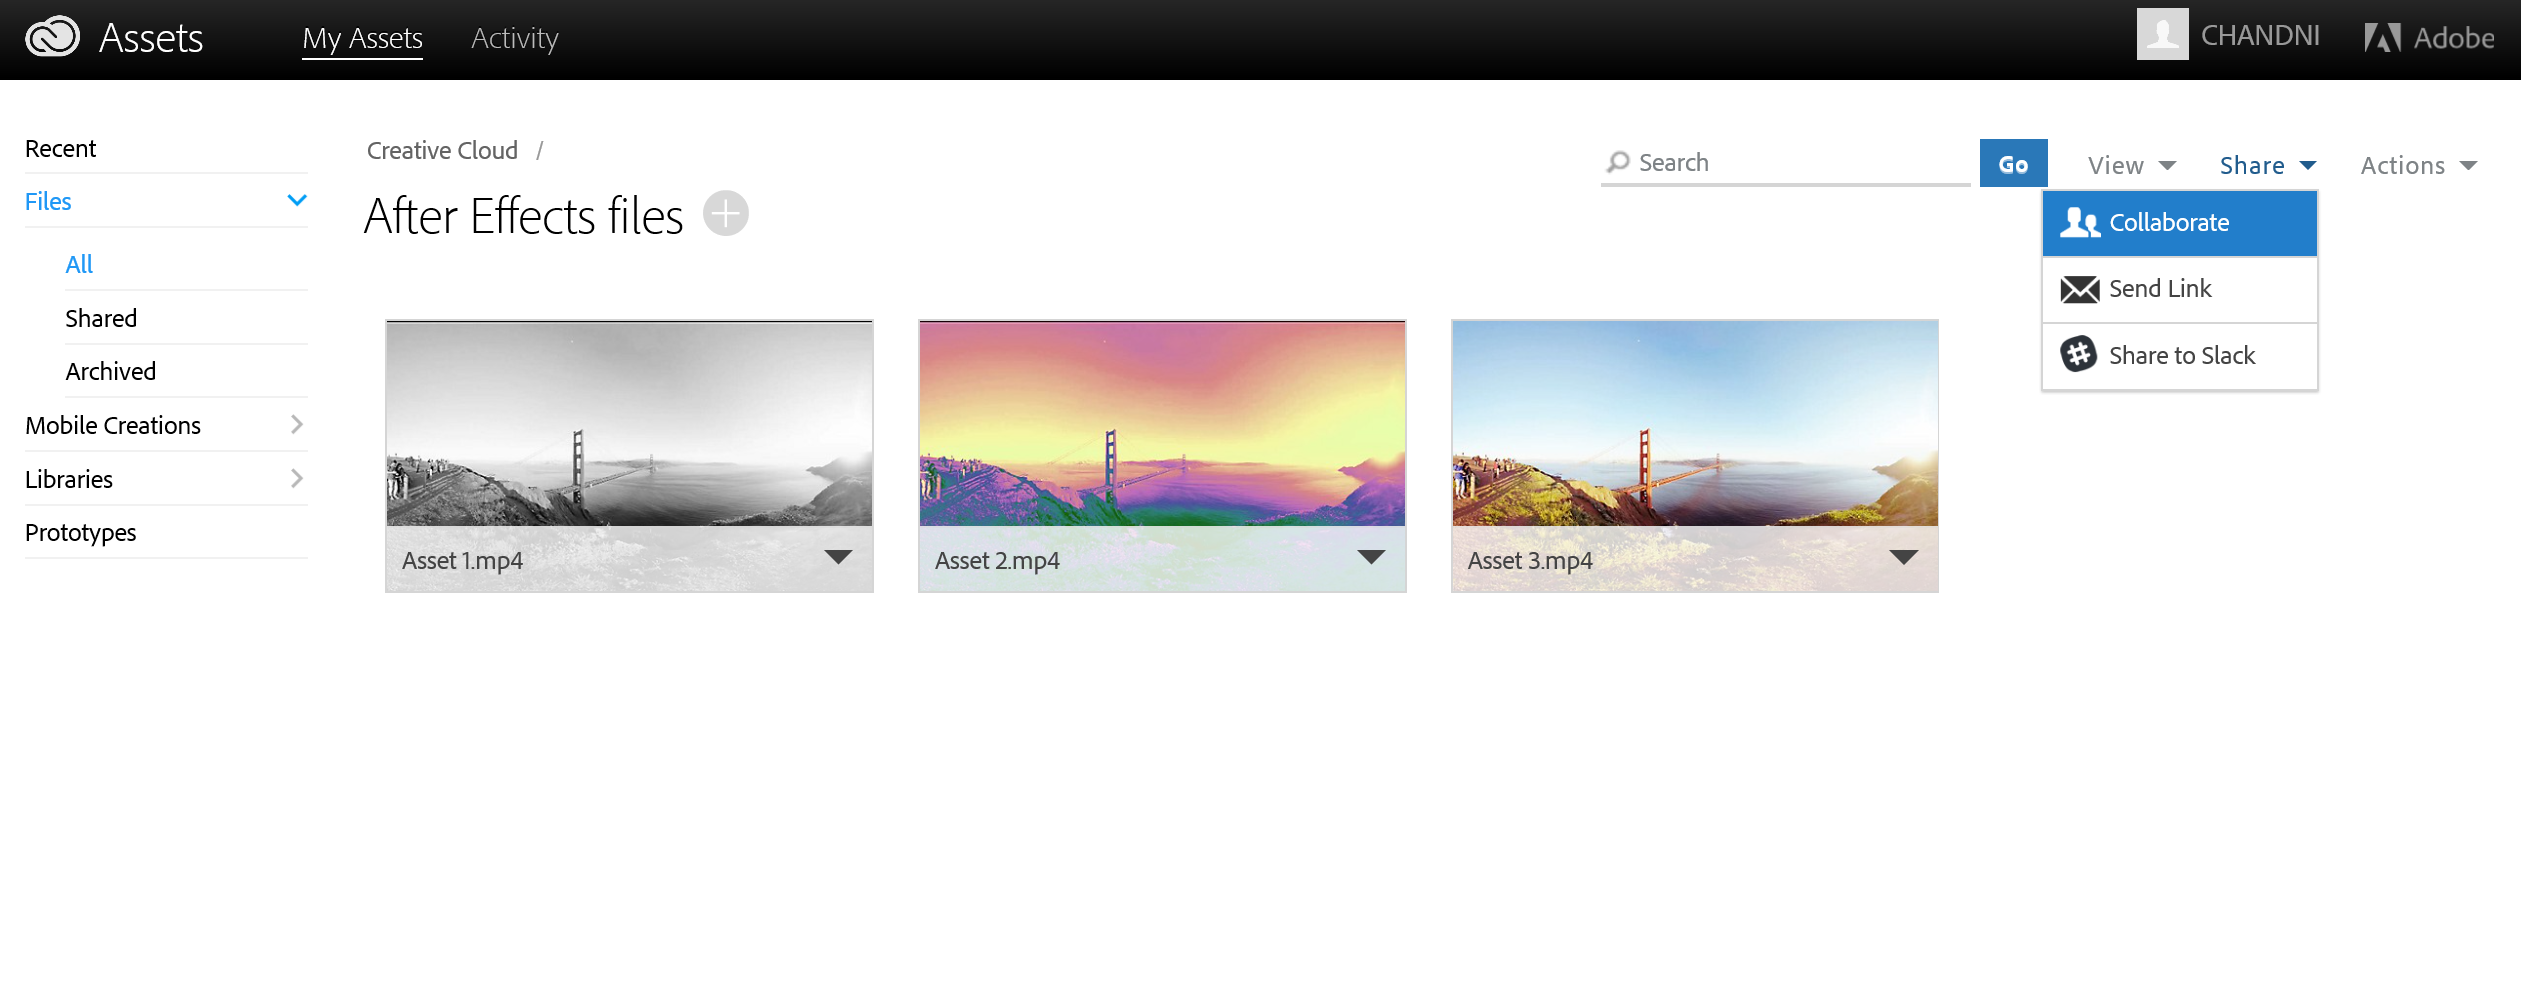 Sharing and collaborating assets from the Creative Cloud Assets page